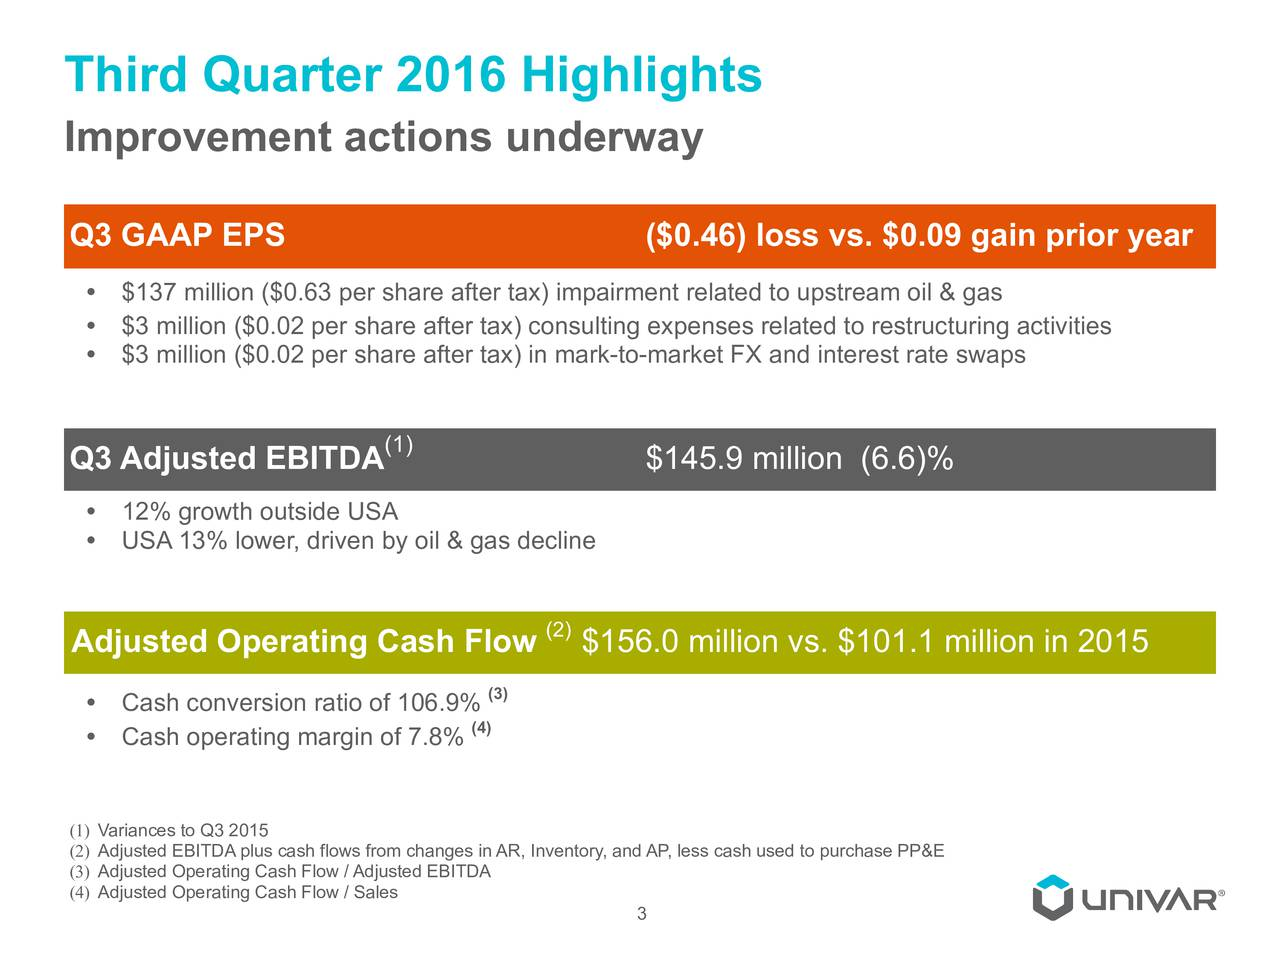 Improvement actions underway Q3 GAAP EPS ($0.46) loss vs. $0.09 gain prior year $137 million ($0.63 per share after tax) impairment related to upstream oil & gas $3 million ($0.02 per share after tax) consulting expenses related to restructuring activities $3 million ($0.02 per share after tax) in mark-to-market FX and interest rate swaps (1) Q3 Adjusted EBITDA $145.9 million (6.6)% 12% growth outside USA USA 13% lower, driven by oil & gas decline Adjusted Operating Cash Flow (2)$156.0 million vs. $101.1 million in 2015 Cash conversion ratio of 106.9%(3) (4) Cash operating margin of 7.8% (1) Variances to Q3 2015 (2) Adjusted EBITDA plus cash flows from changes in AR, Inventory, and AP, less cash used to purchase PP&E (3) Adjusted Operating Cash Flow / Adjusted EBITDA (4) Adjusted Operating Cash Flow / Sales 3